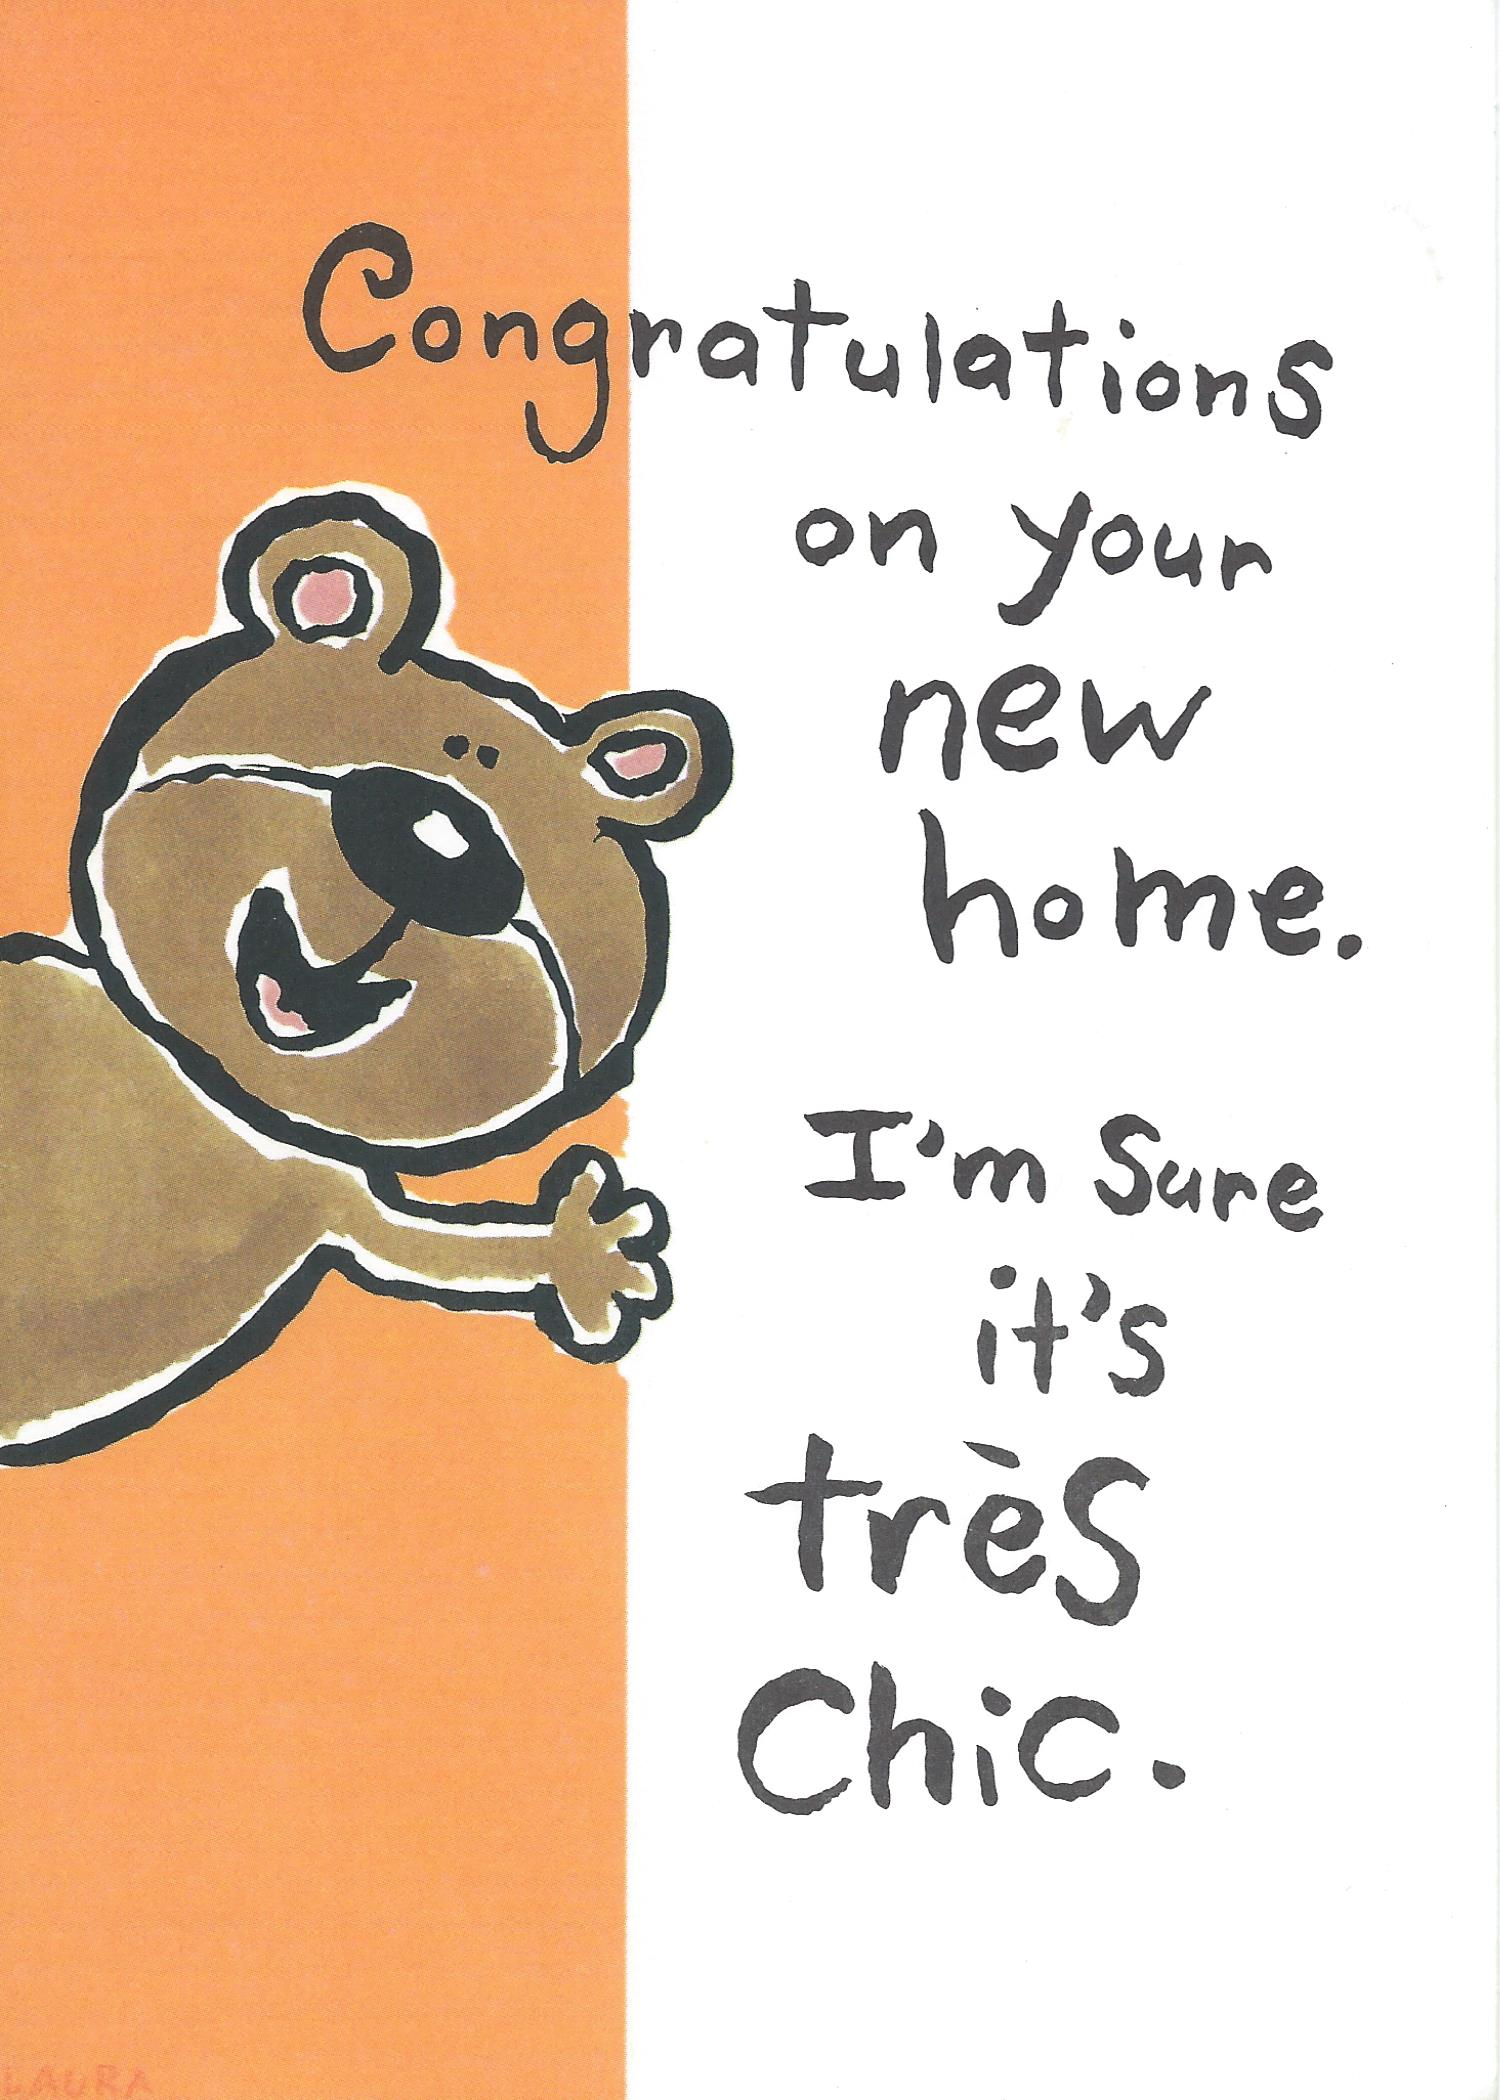 Congratulations on your new home. I'm sure it's tres chic.